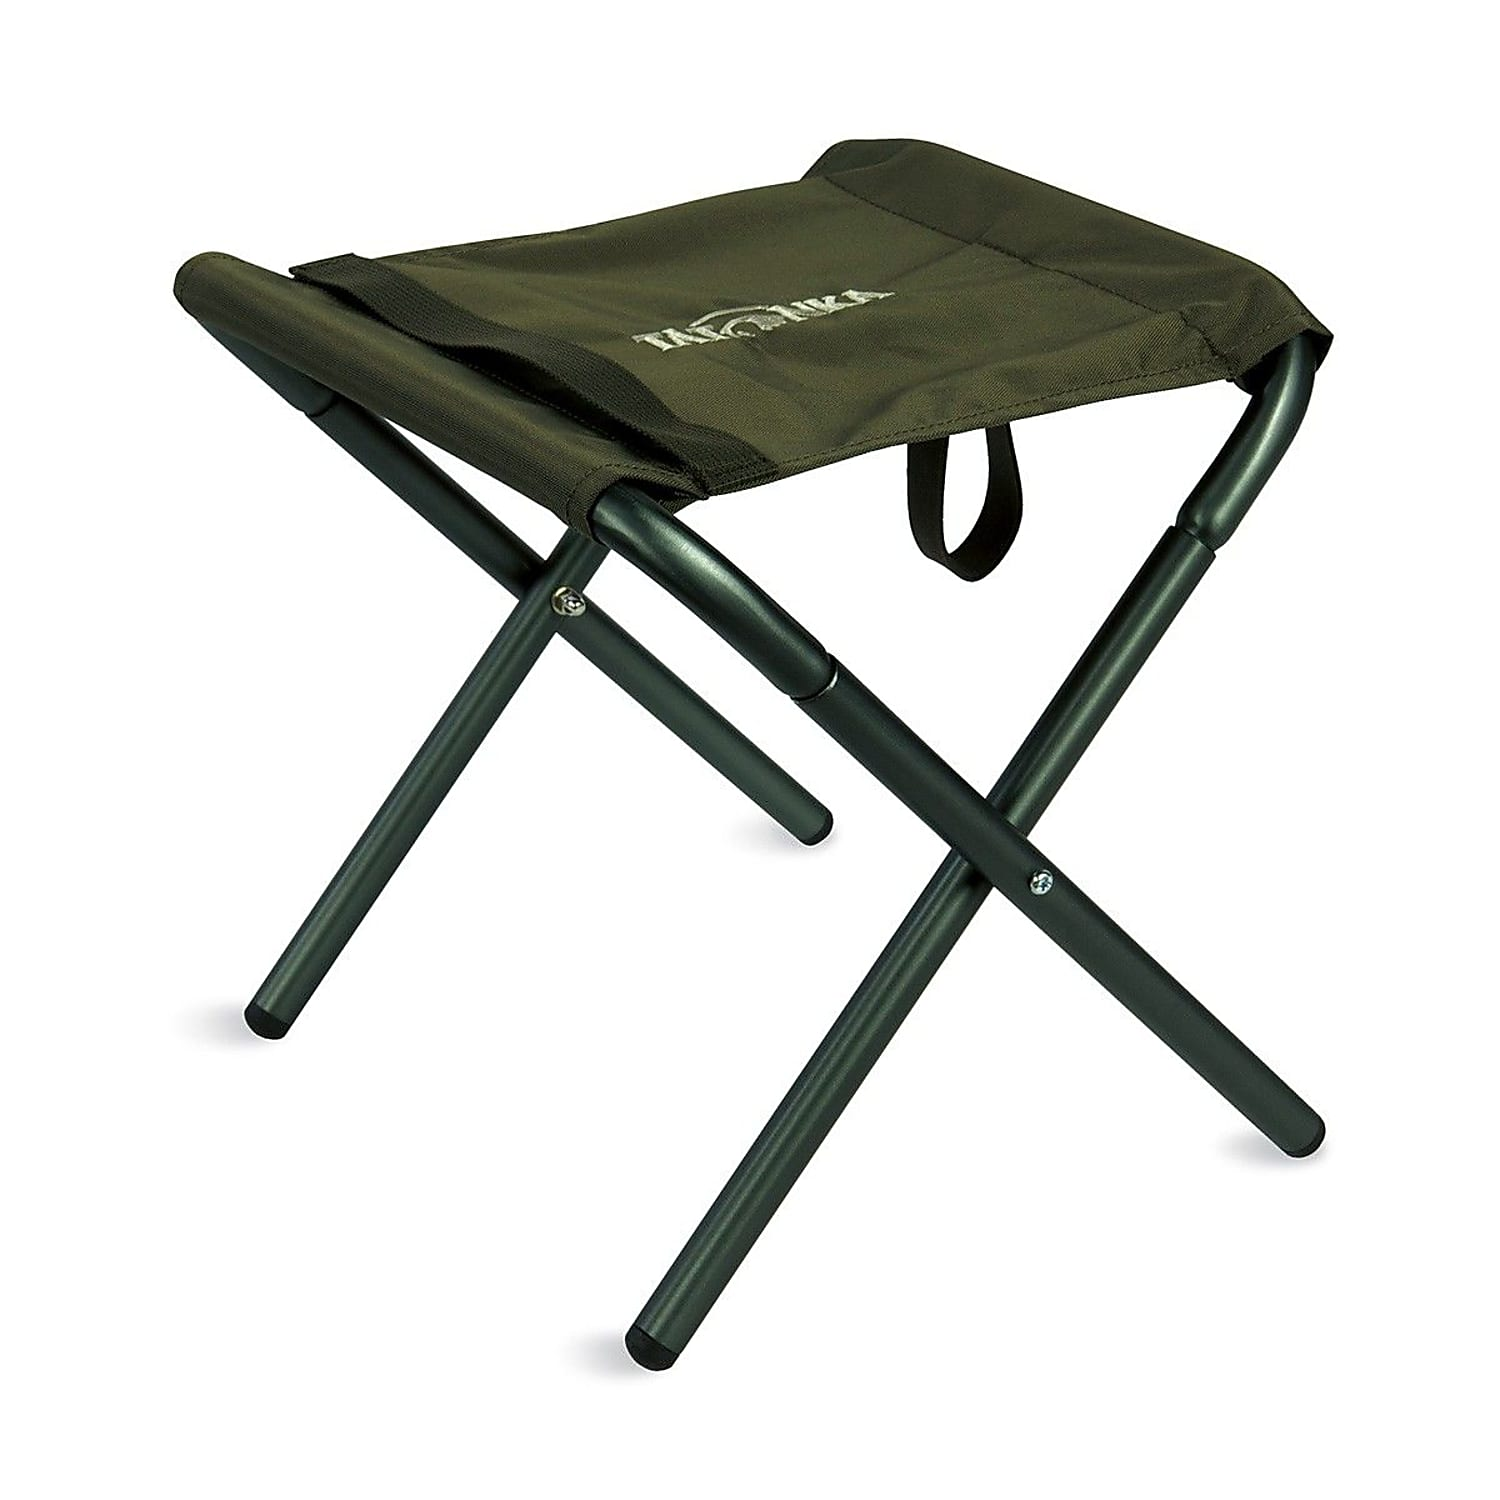 Small Folding Table And Chairs Ikea With Chair Storage Kitchen Iron Outdoor Gear Camping For Sale Stools Expocafeperu Com